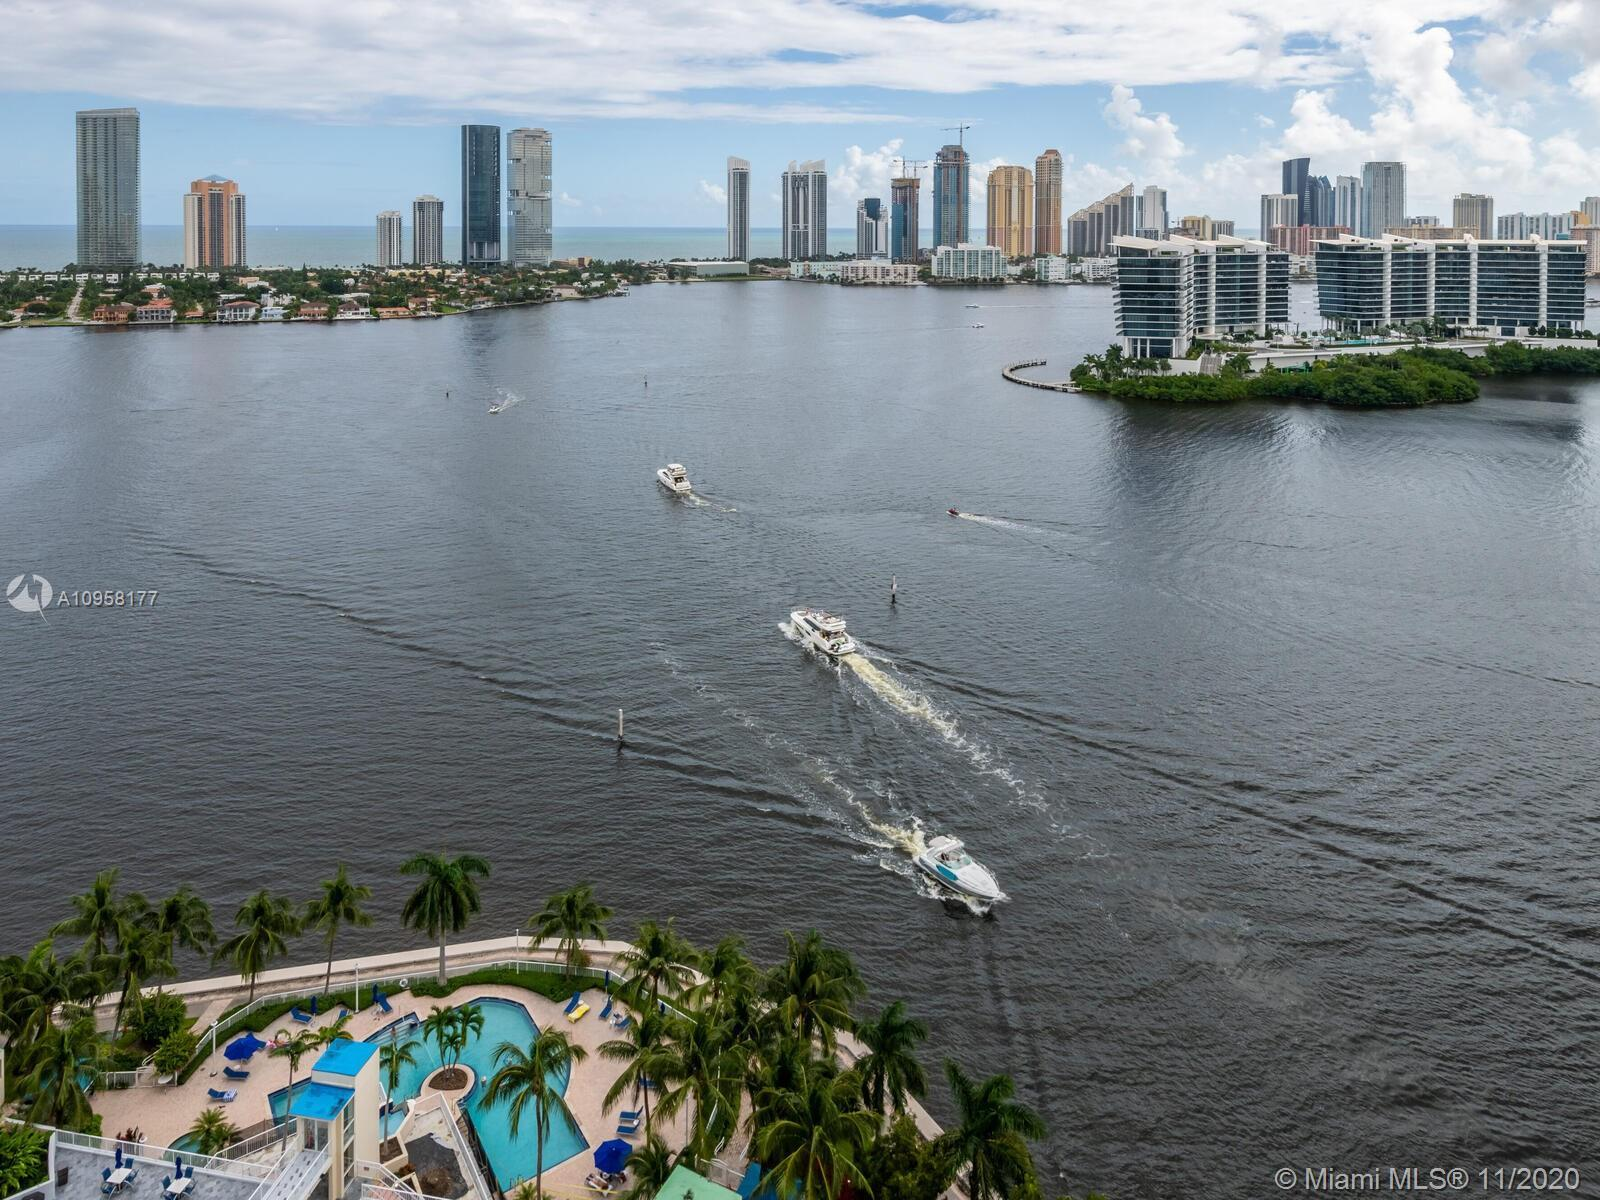 Remarks